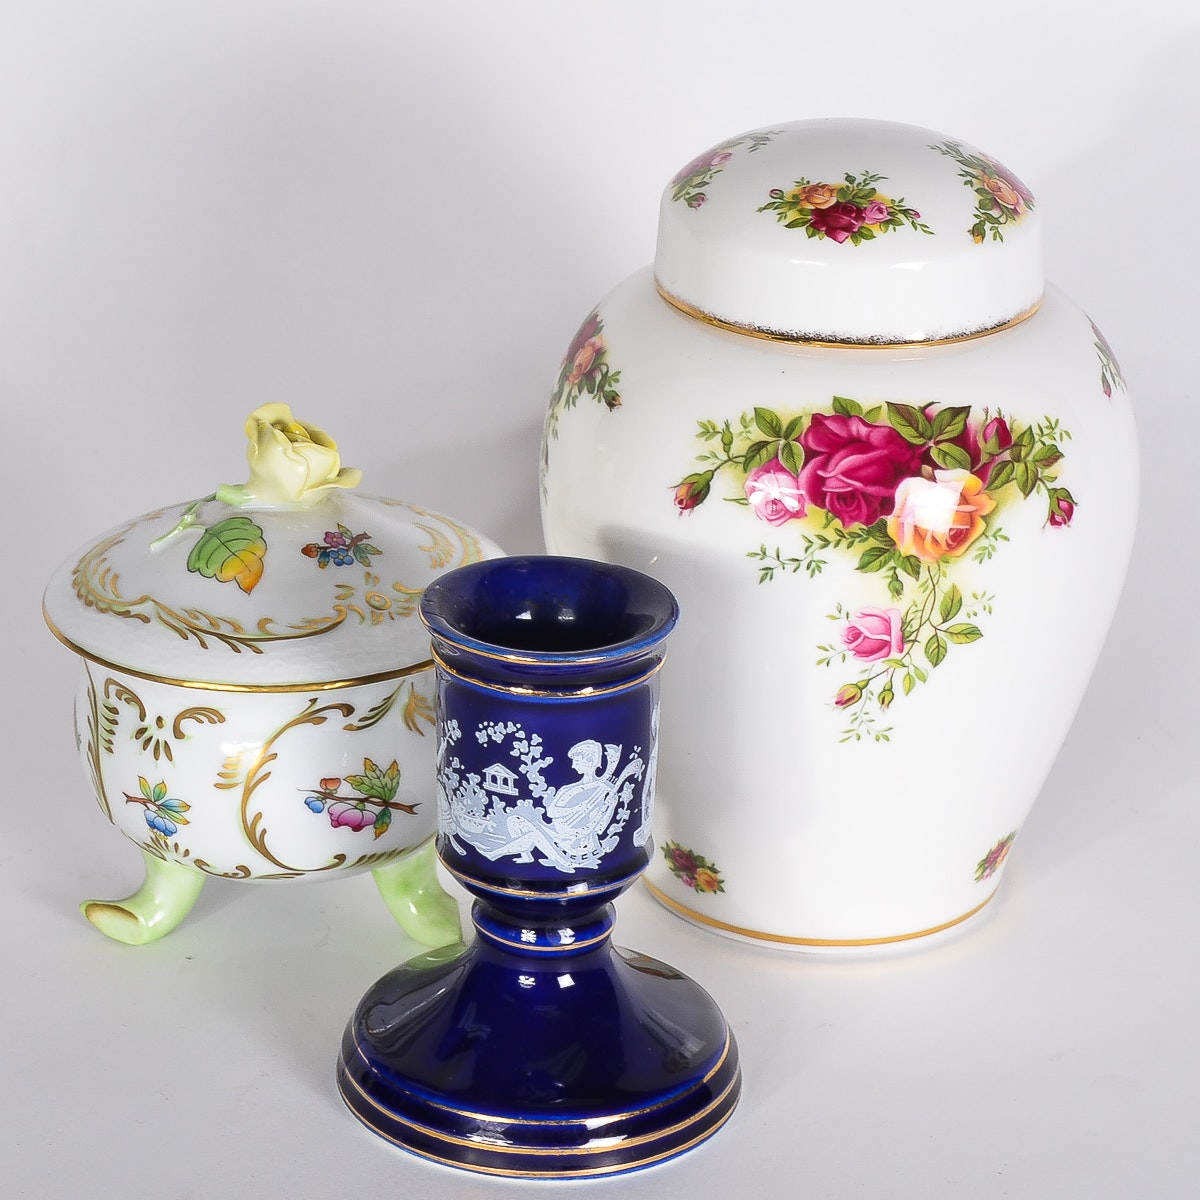 Collection of Porcelain Decorative Pieces including Royal Albert